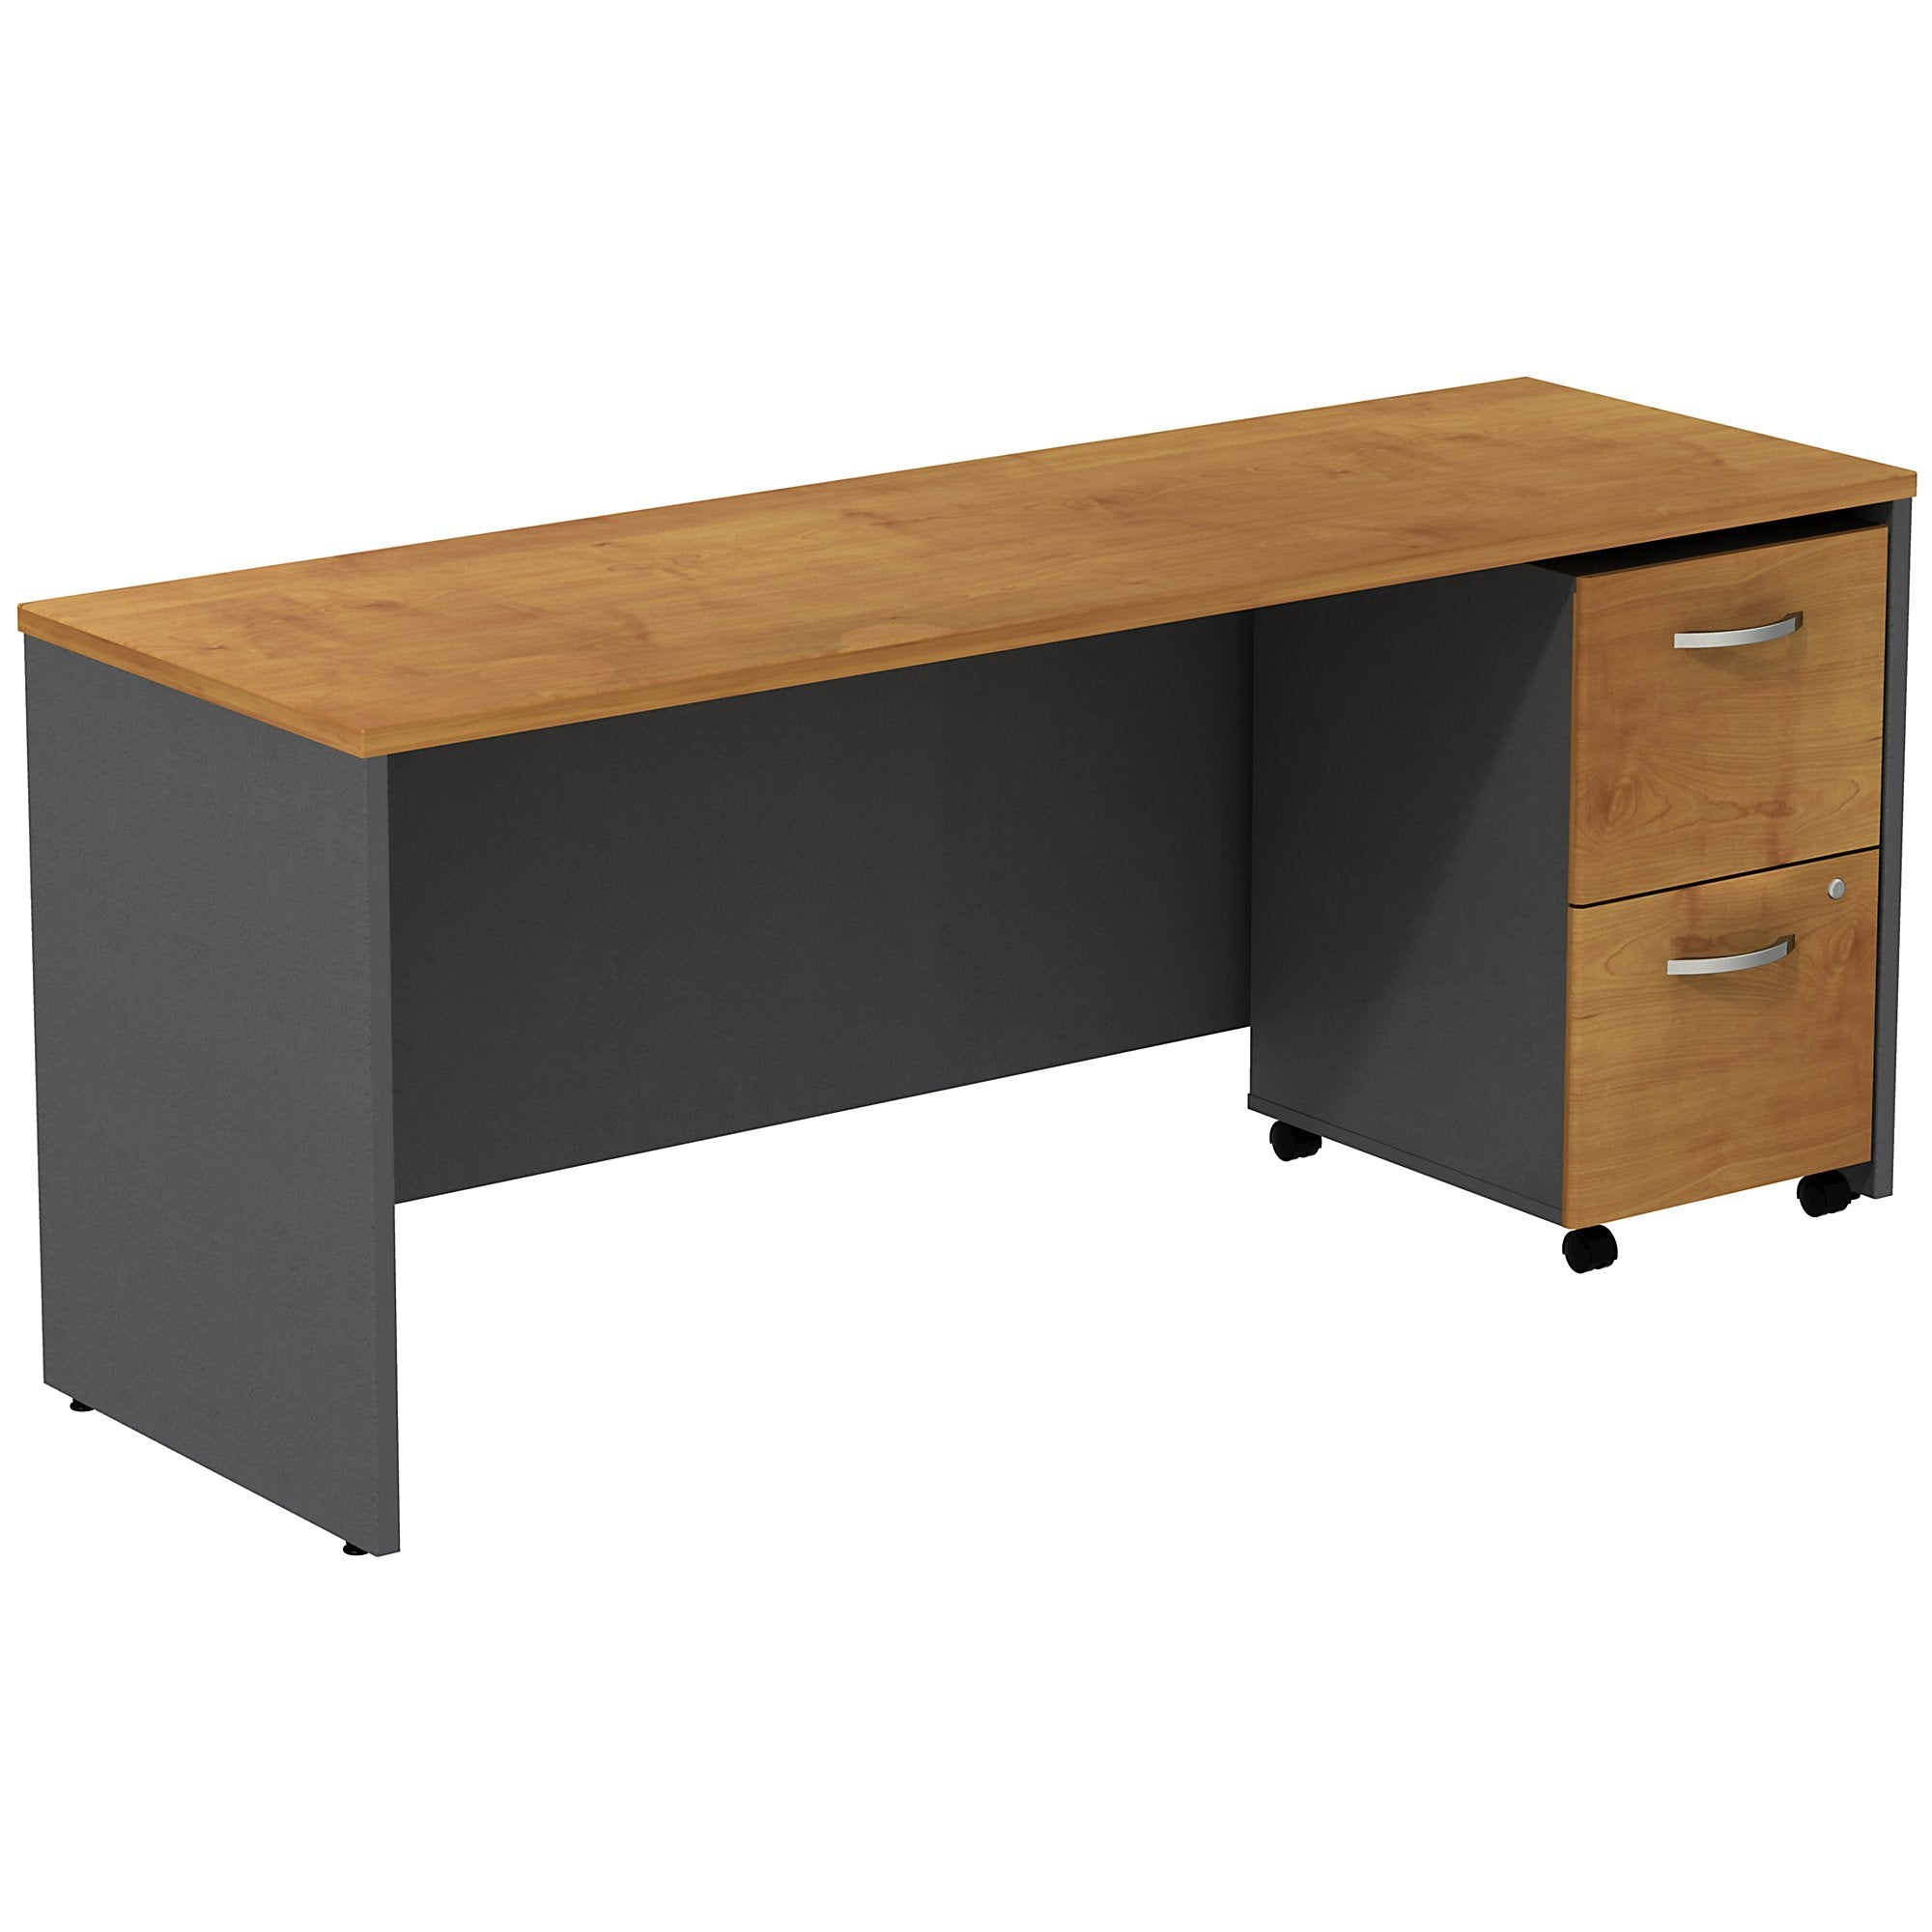 Bush Business Furniture Series C Desk Credenza with 2 Drawer Mobile Pedestal | Natural Cherry/Graphite Gray